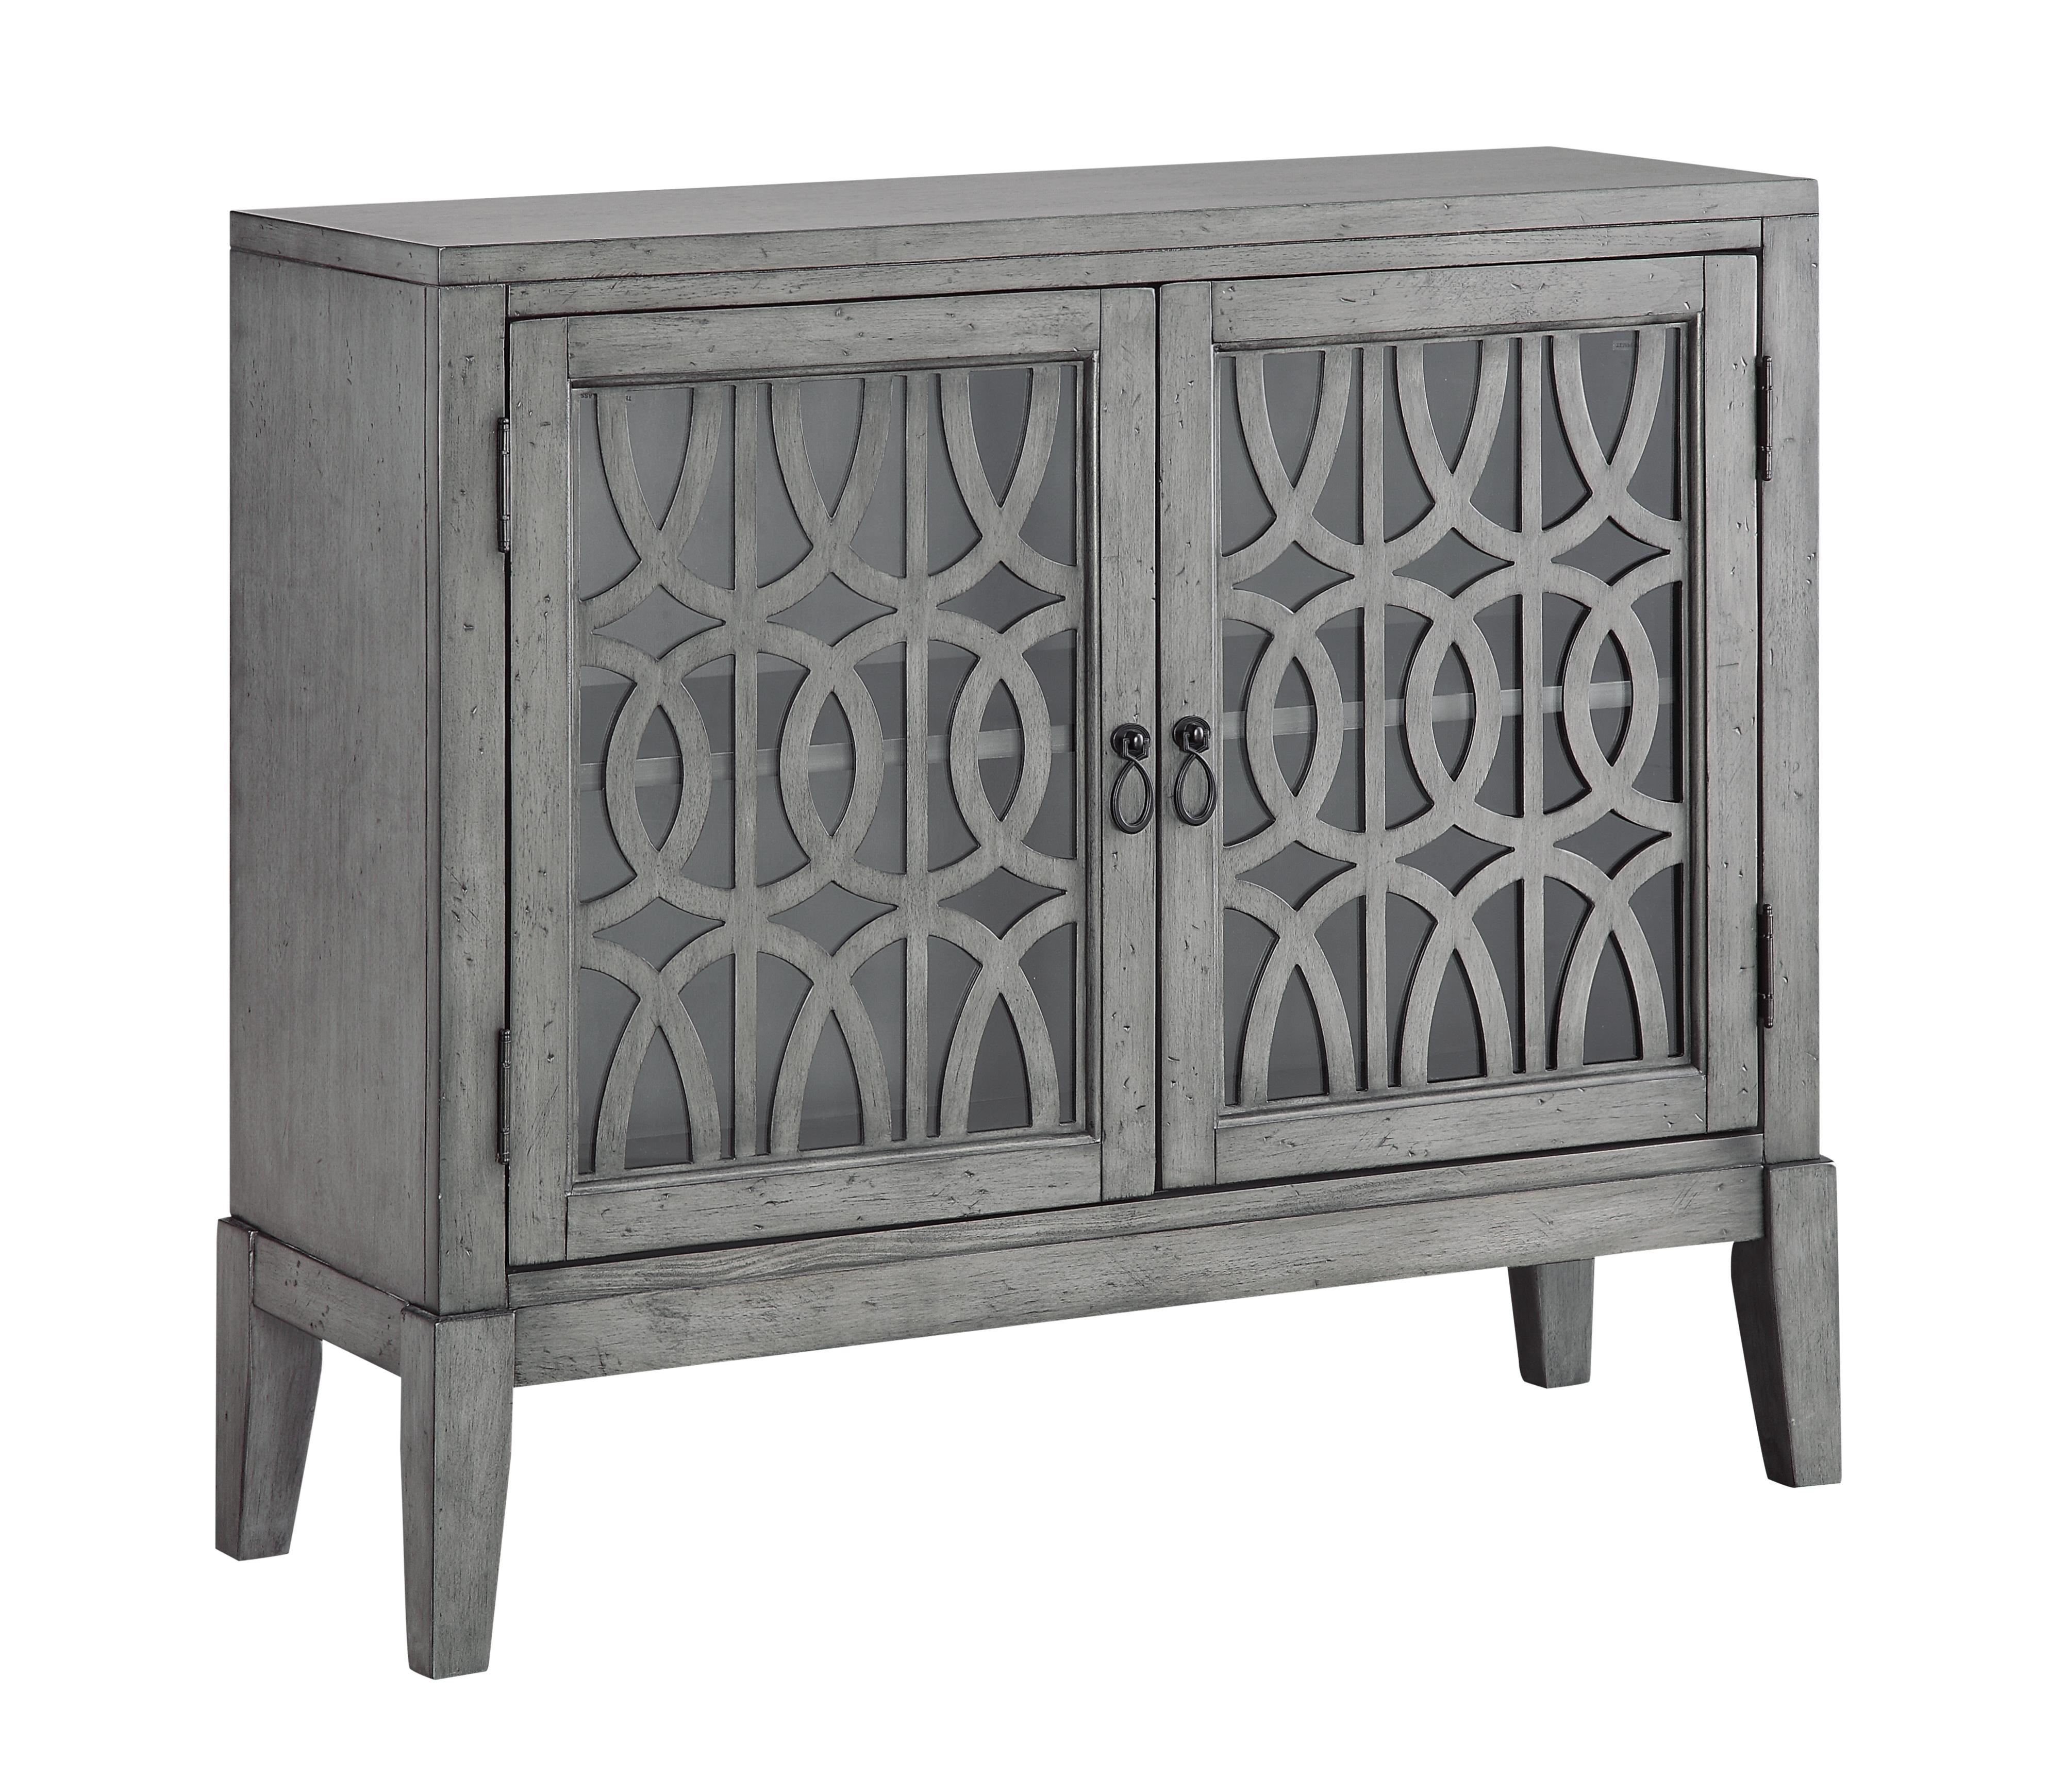 Accents Cabinet by Coast to Coast Imports at HomeWorld Furniture